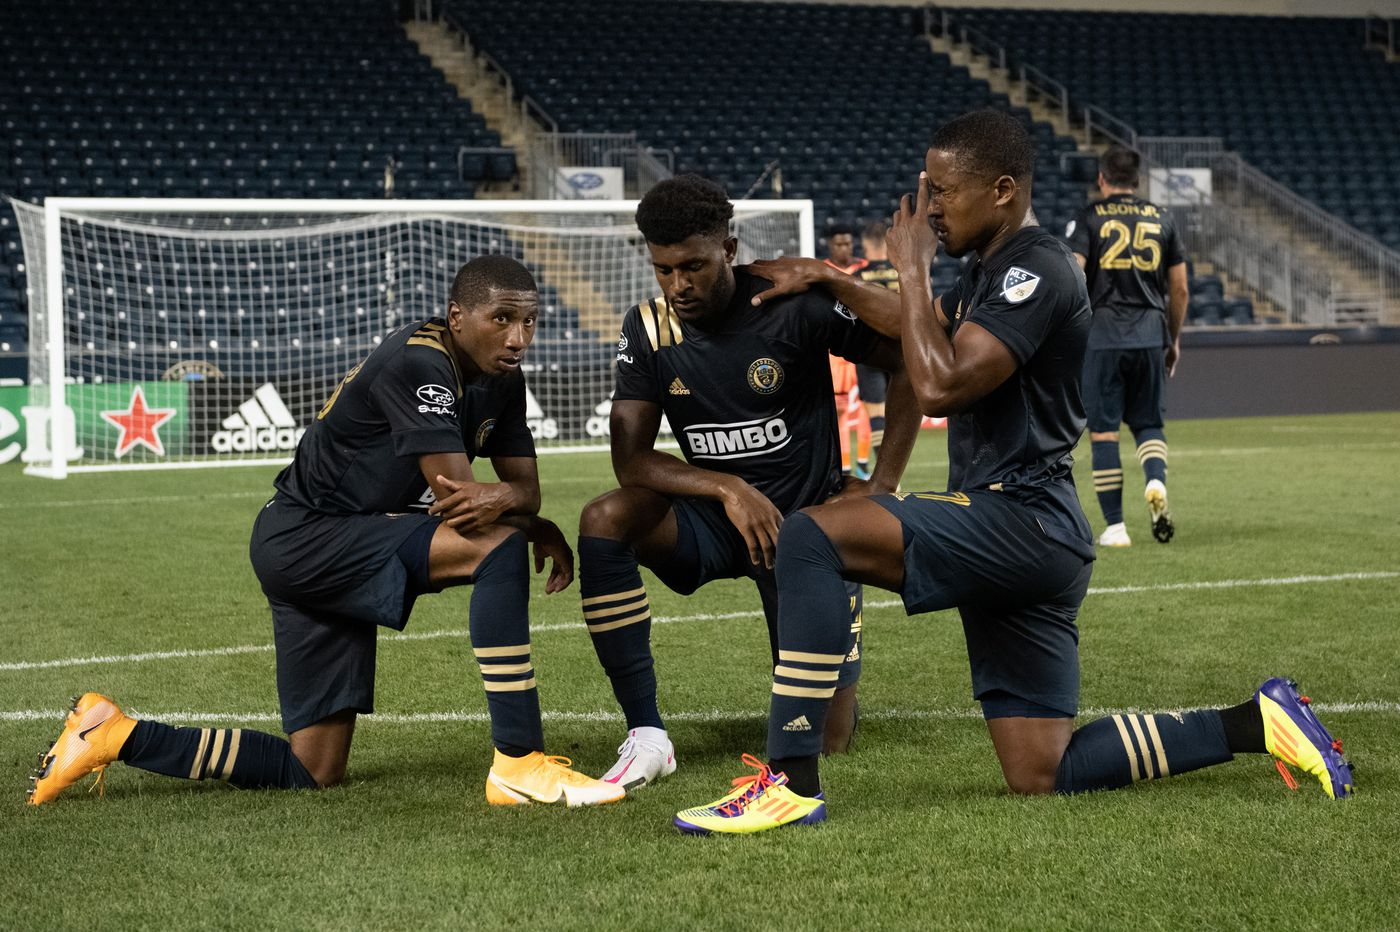 Mark McKenzie stands out on and off the field in Union's win over Red Bulls